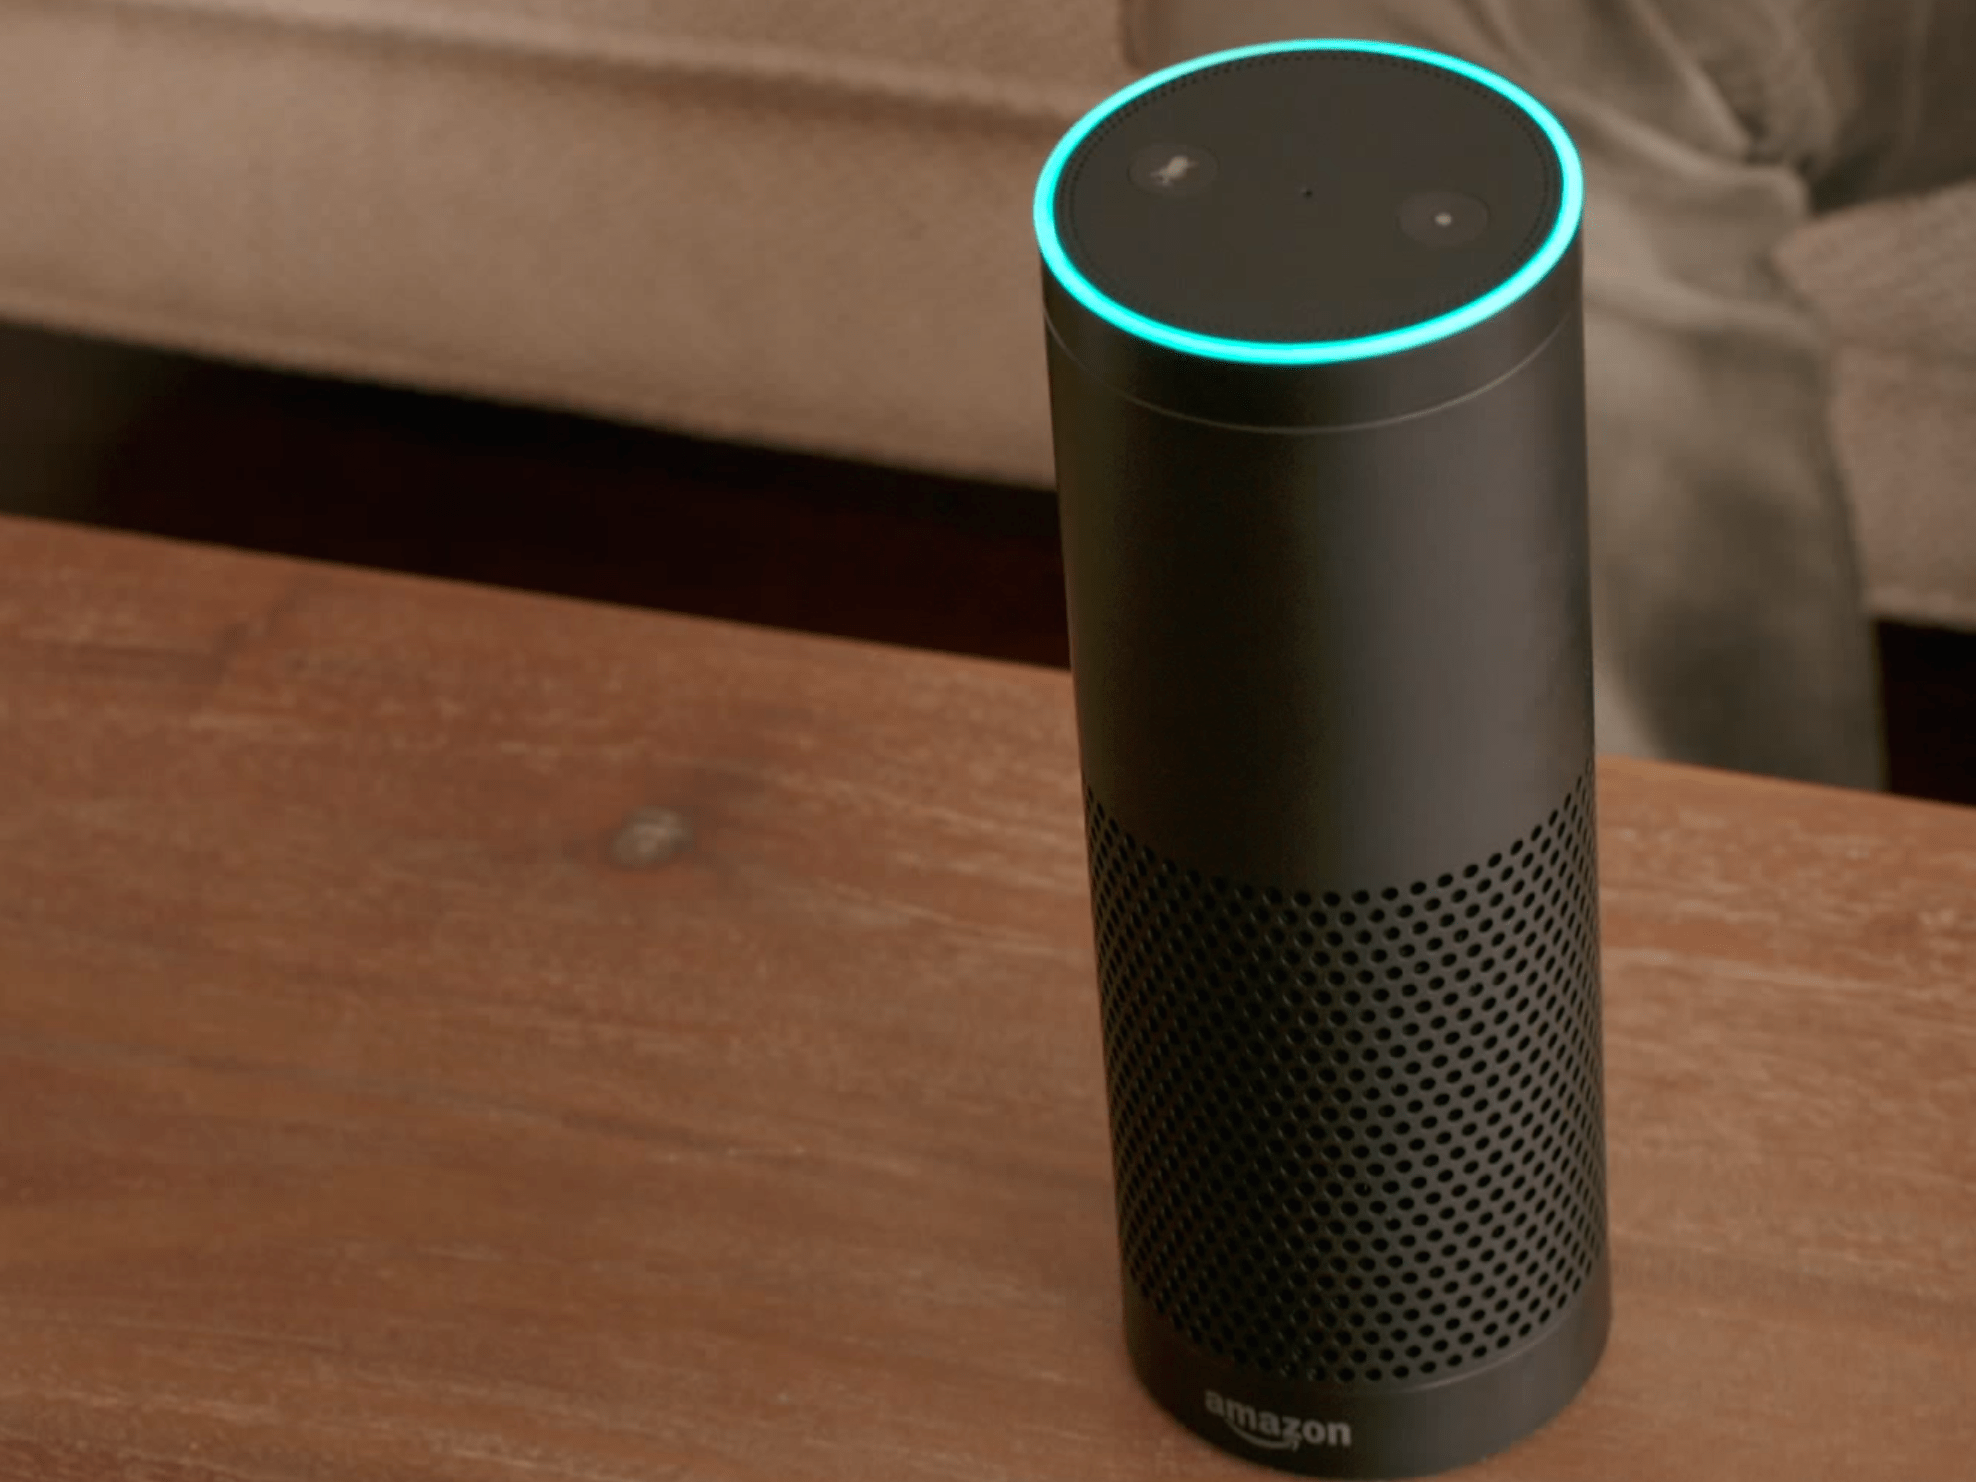 Rumor: Amazon Echo Could Start Speaking on its Own